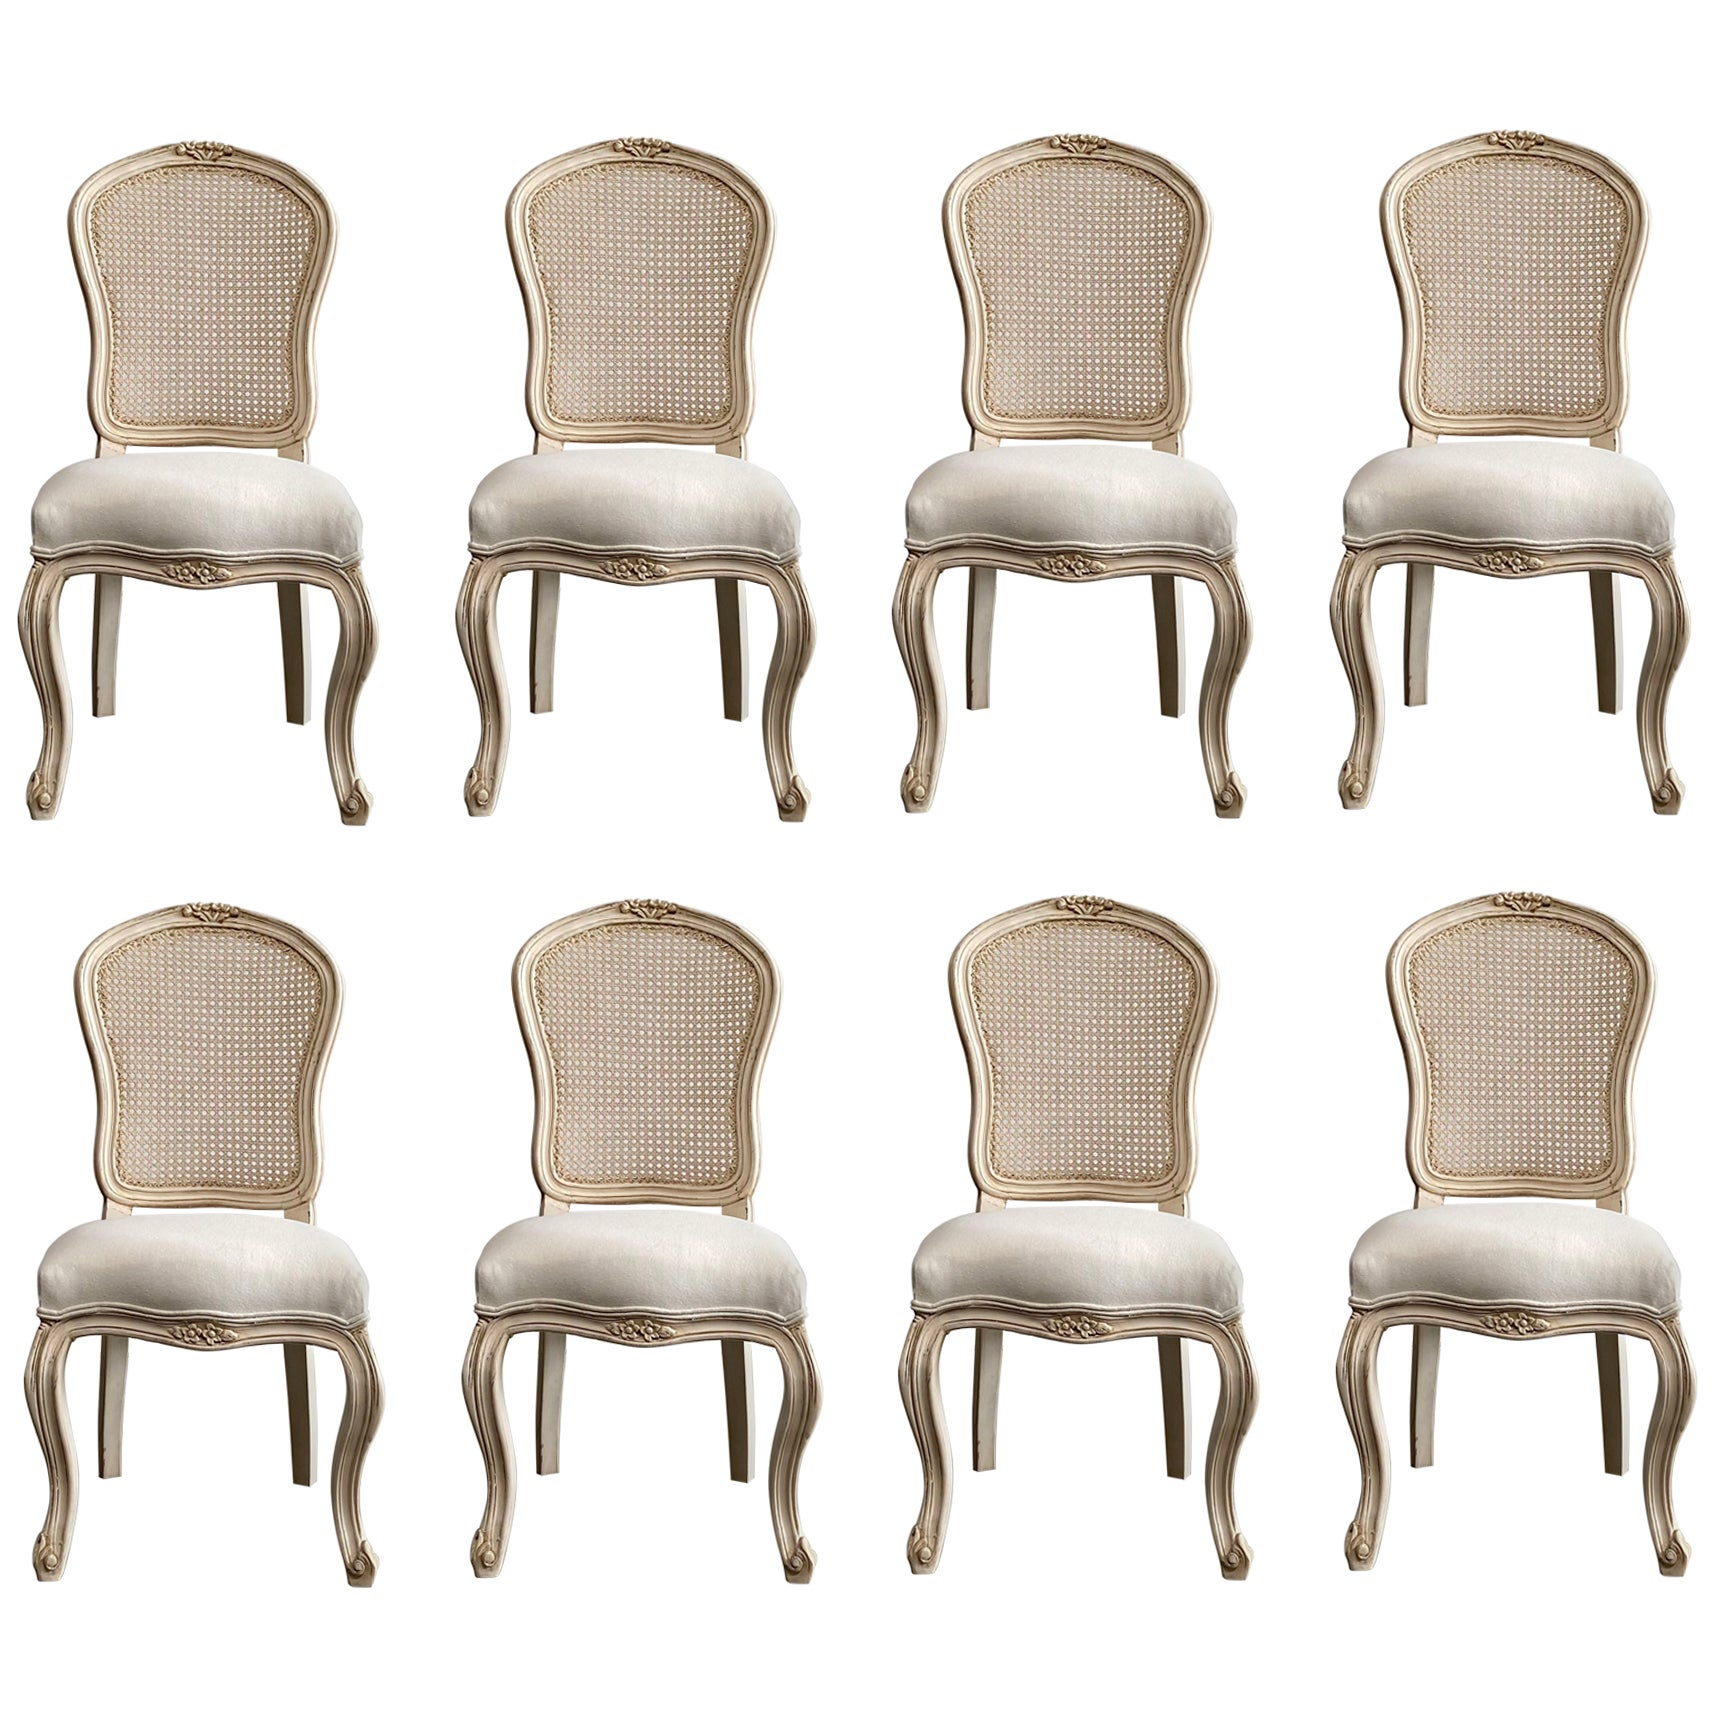 Set of 8 French Louis XV Style Painted and Upholstered Cane Back Chairs